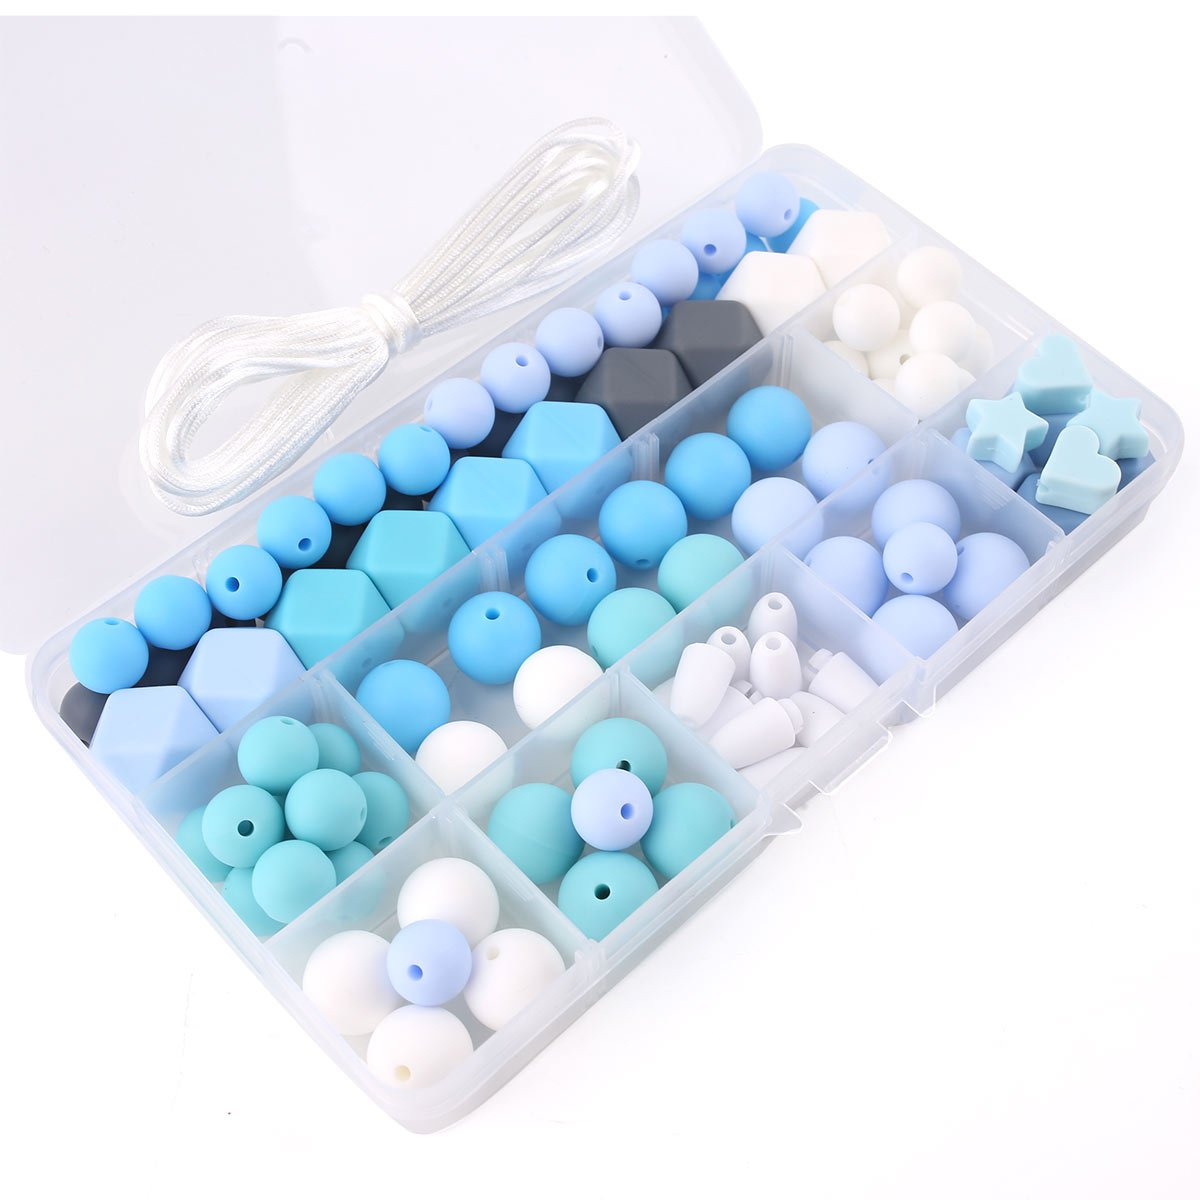 Silicone Beads Bulk DIY Teething Jewelry Colorful Balls Sensory Kids Jewelry Necklace Chewable Beads Organic Teether Toys